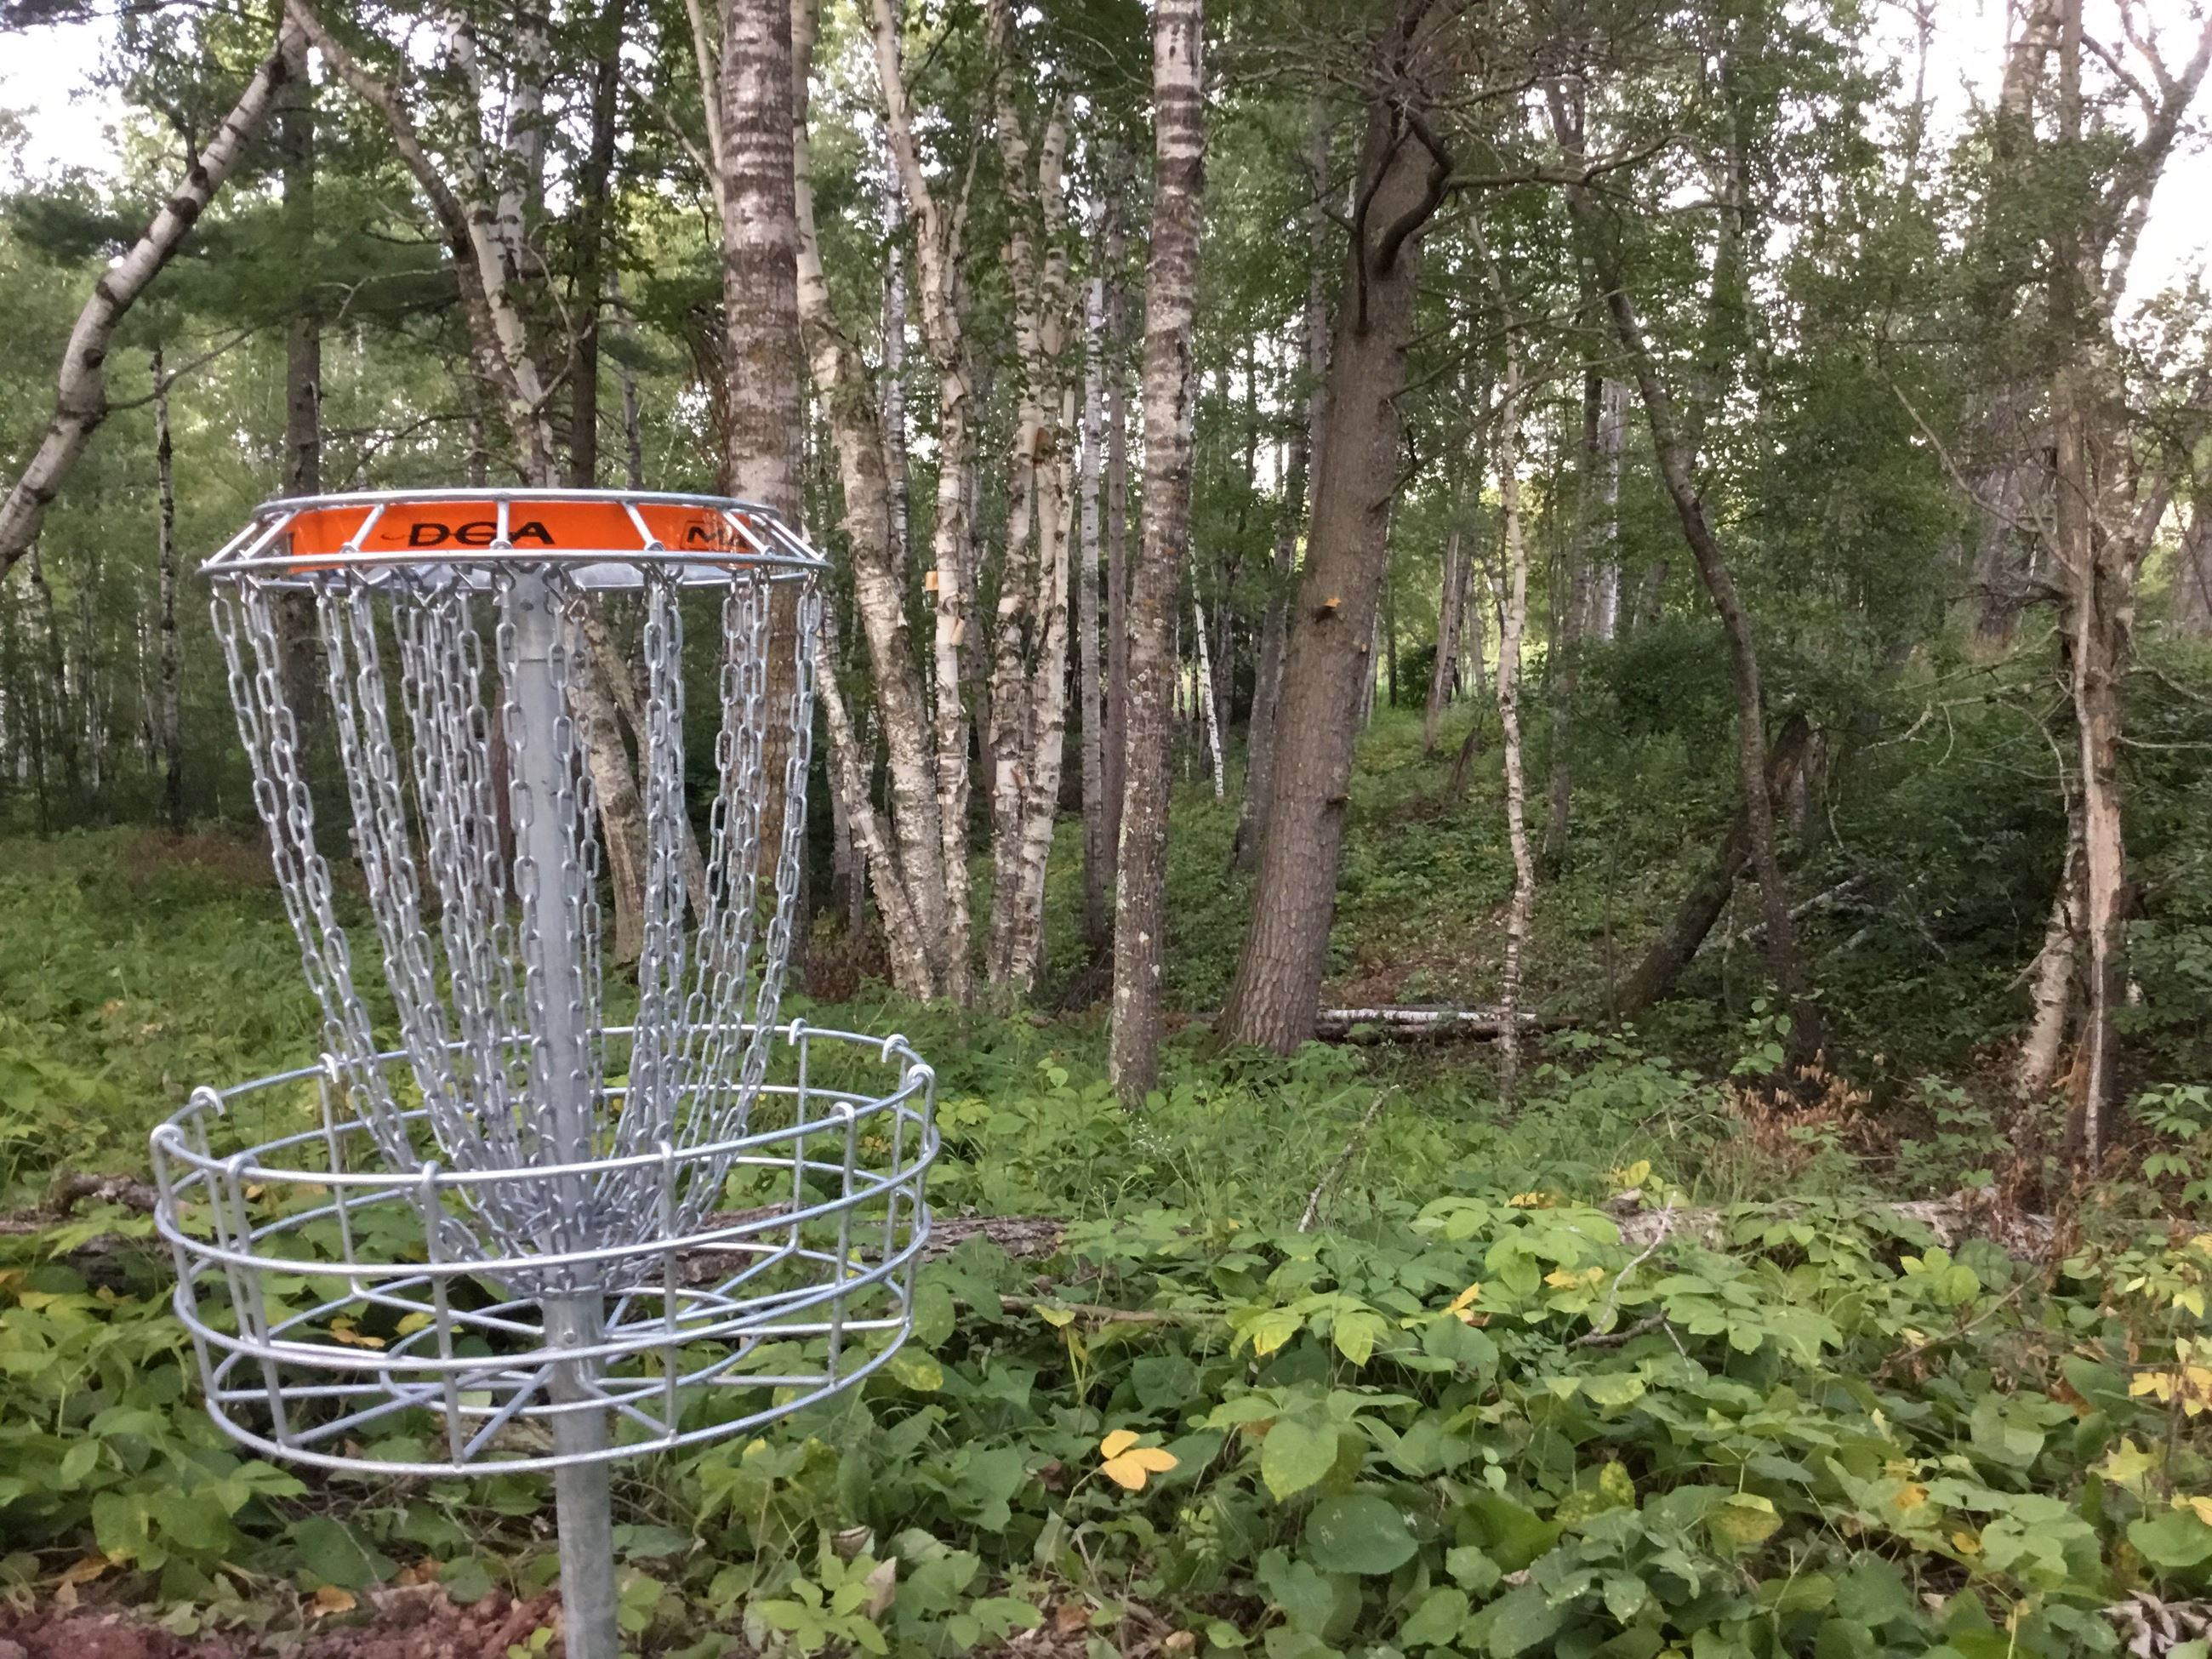 A disc golf basket on the Superior Municipal Forest disc golf course